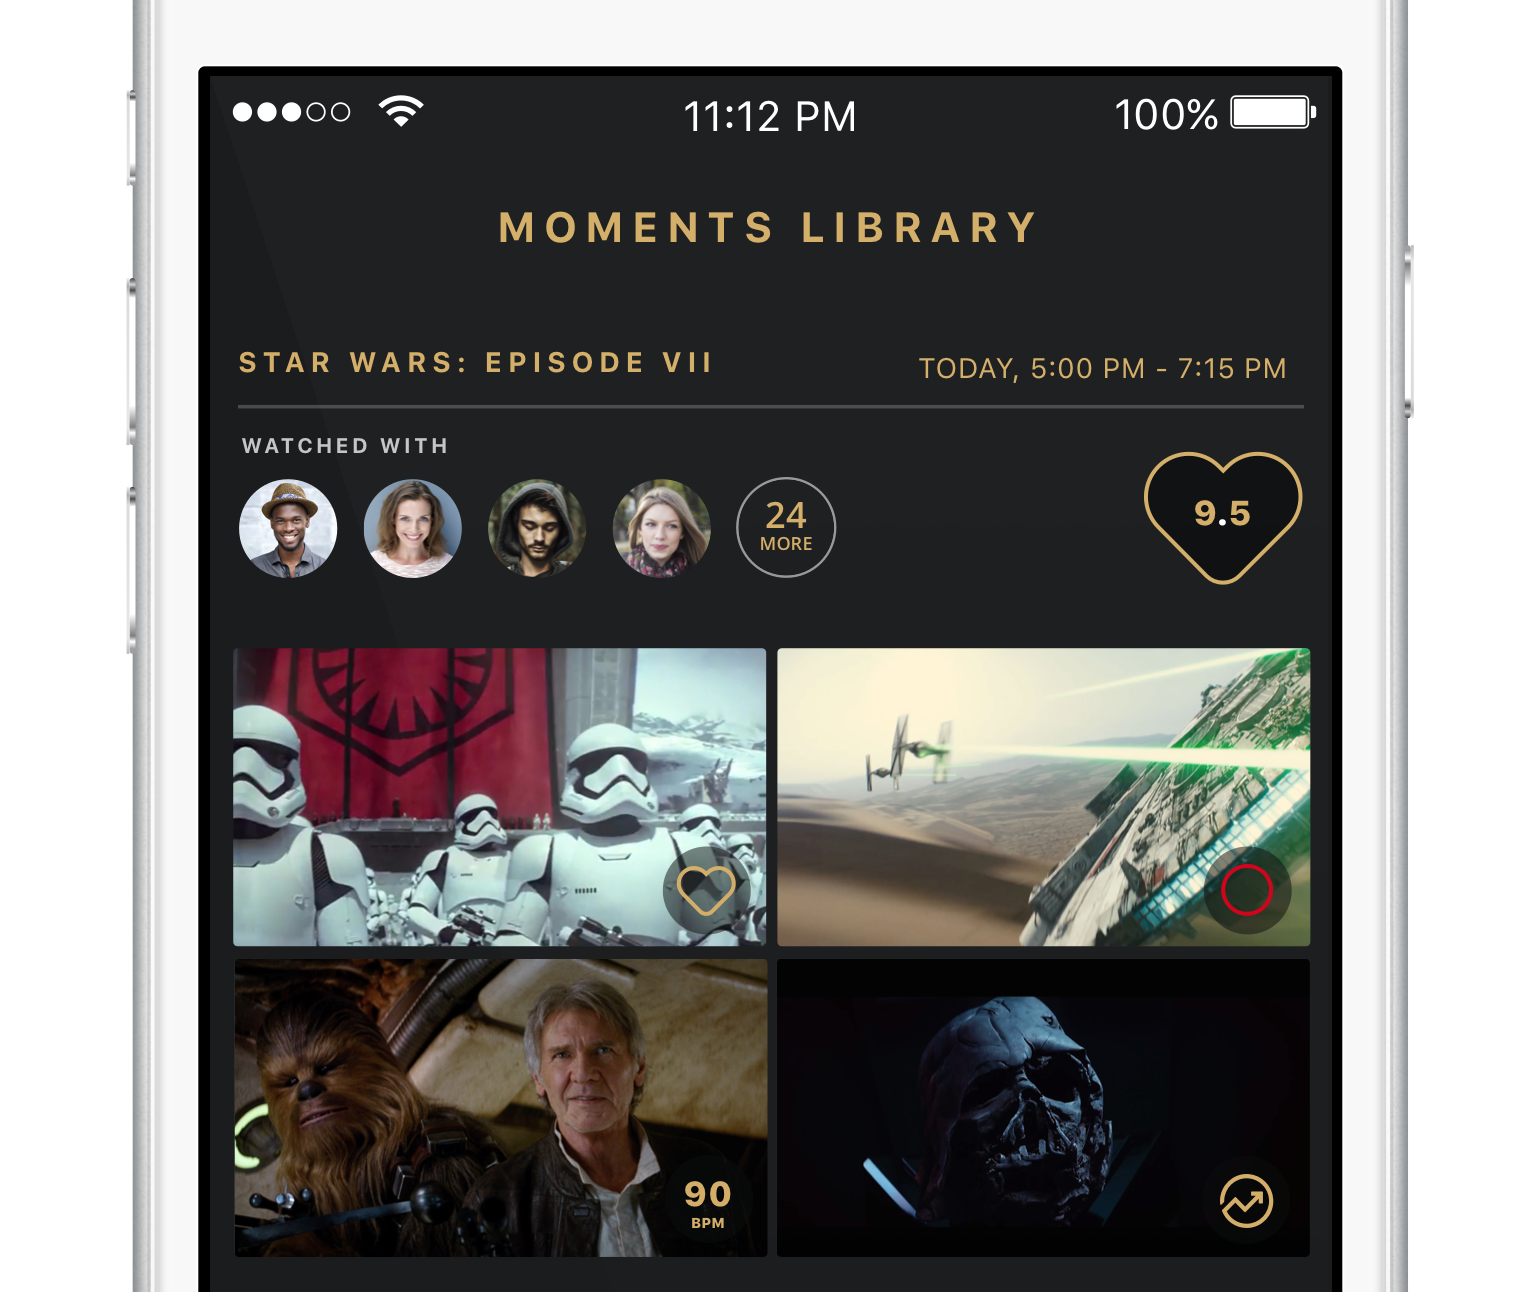 Moments Library